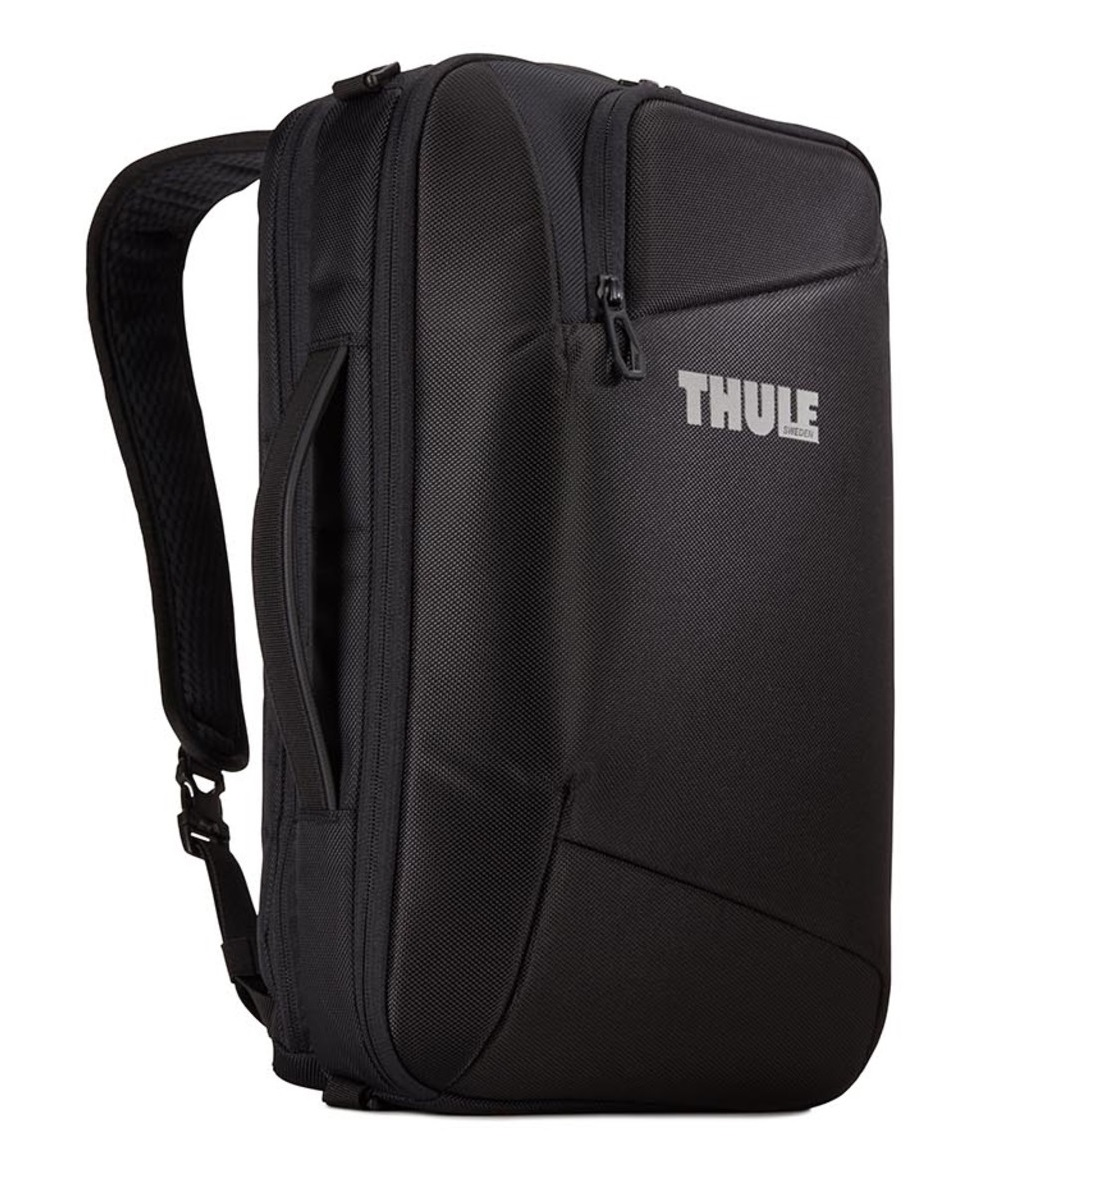 Рюкзак Thule Accent Laptop Bag 15.6